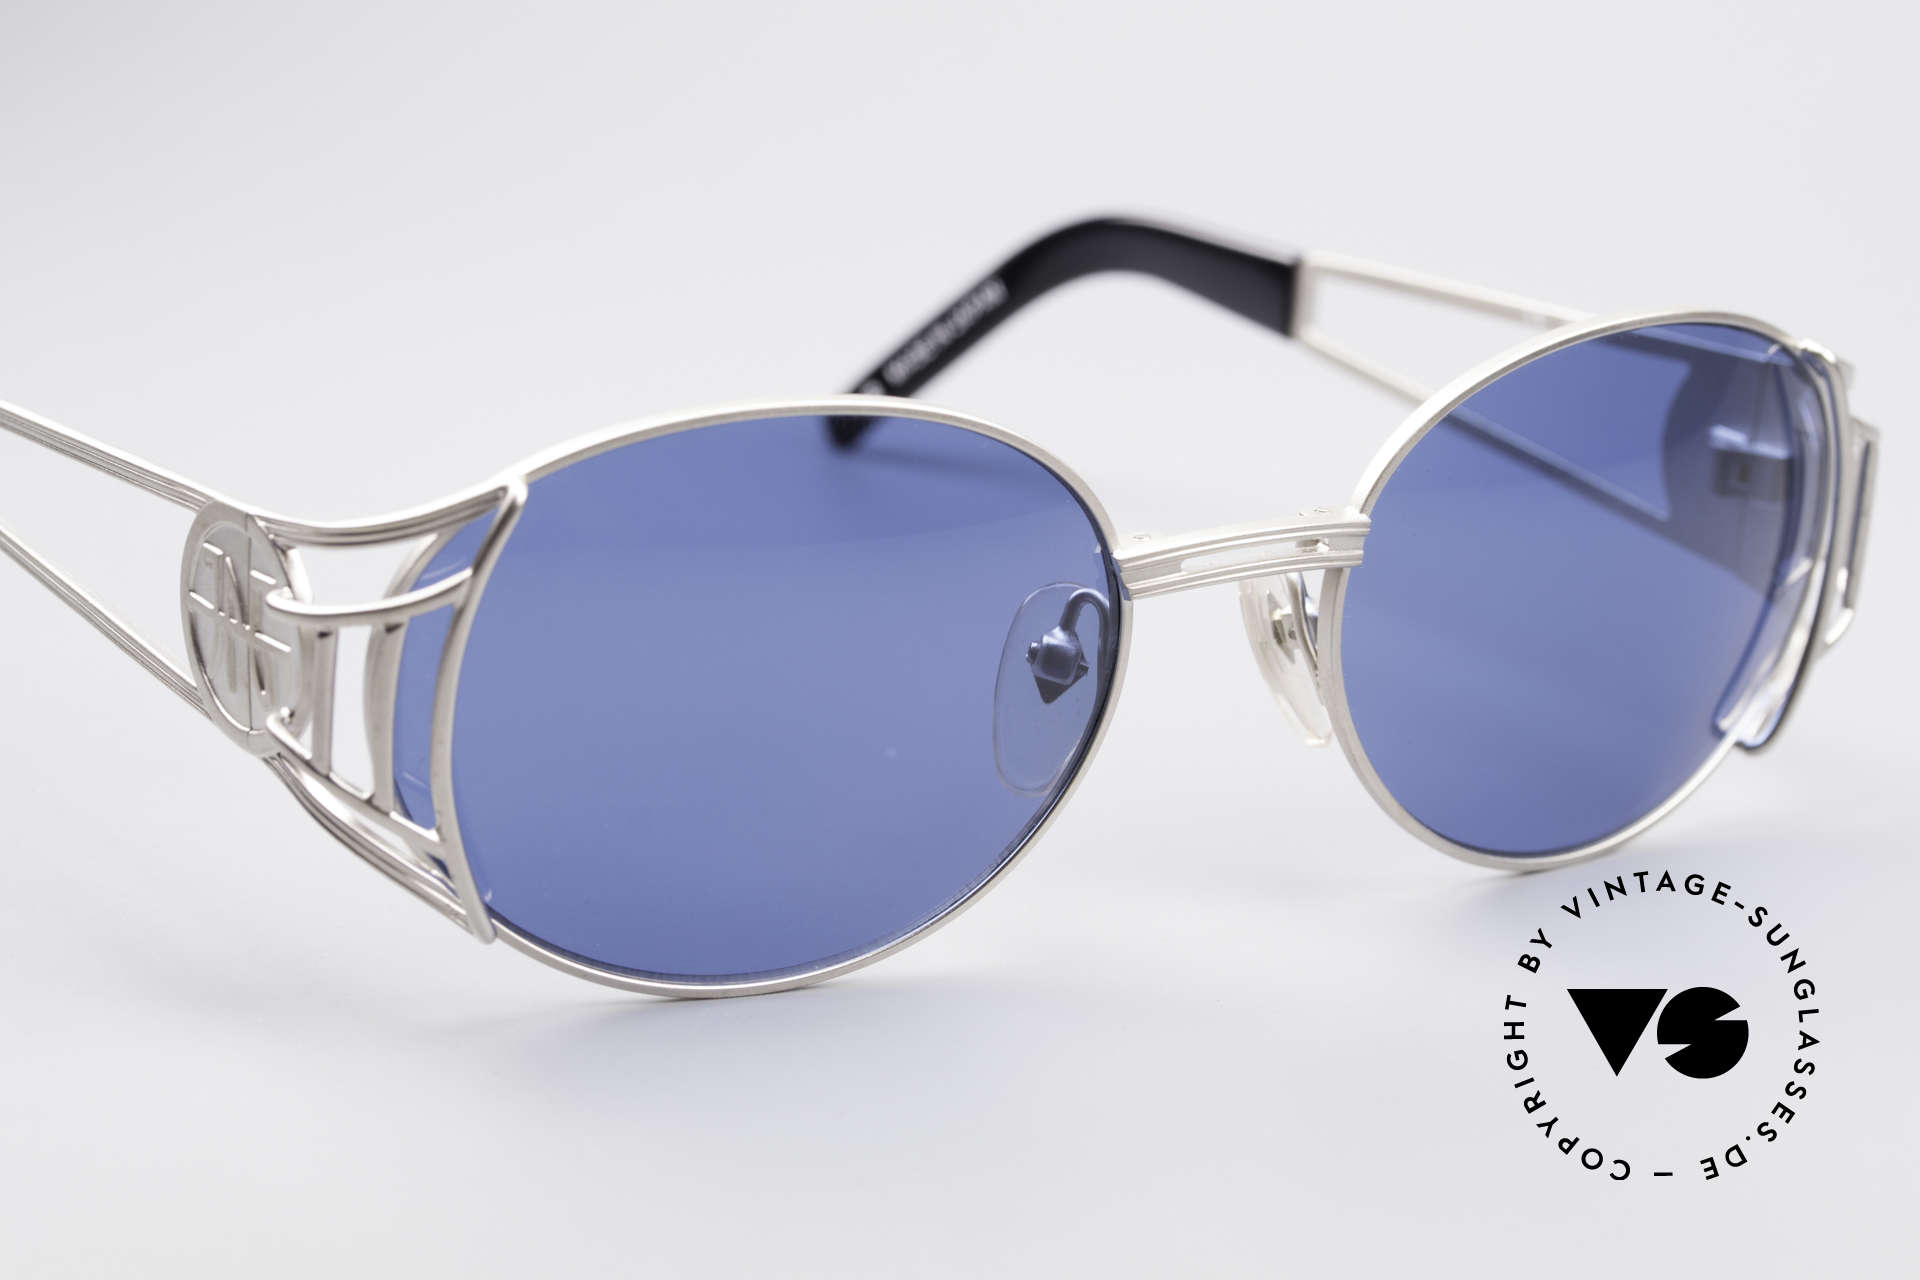 Jean Paul Gaultier 58-6102 Steampunk Sunglasses, NO RETRO sunglasses, but a 20 years old original, Made for Men and Women